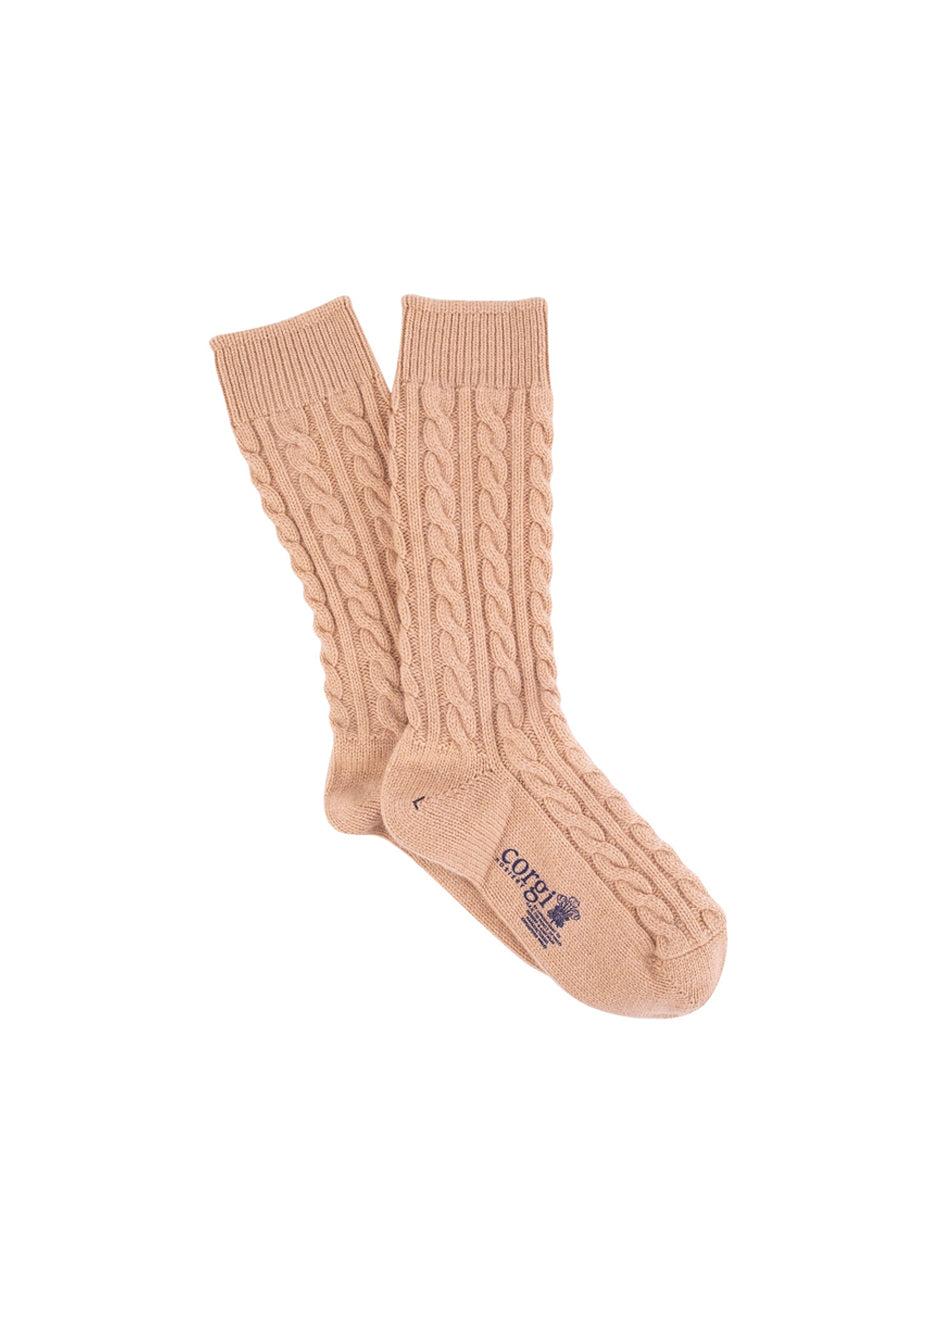 Women's Beige Cable Cashmere Socks